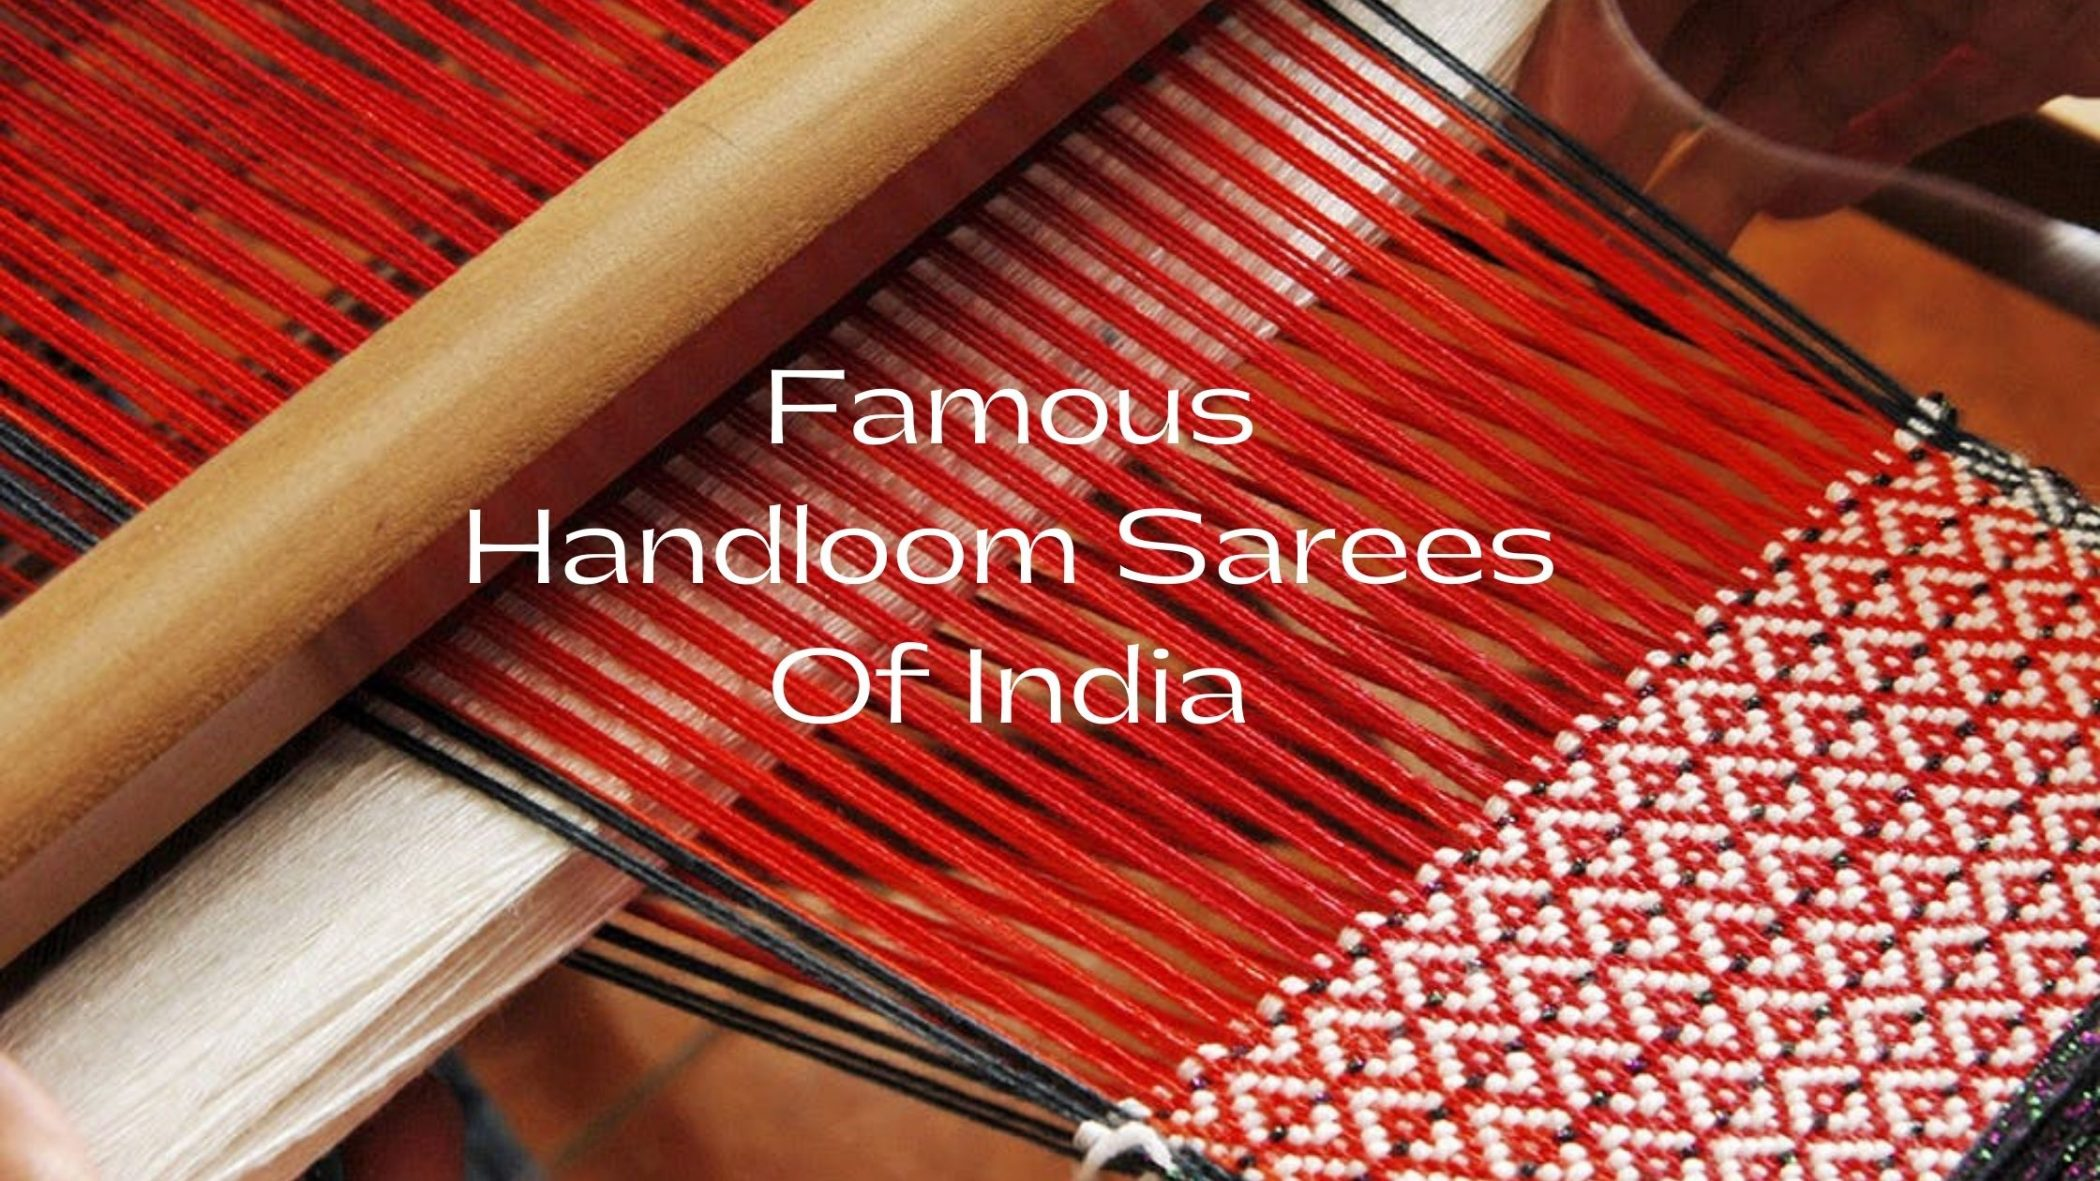 Famous Handloom Sarees Of India | Learn How To Differentiate Handloom From Powerloom Sarees